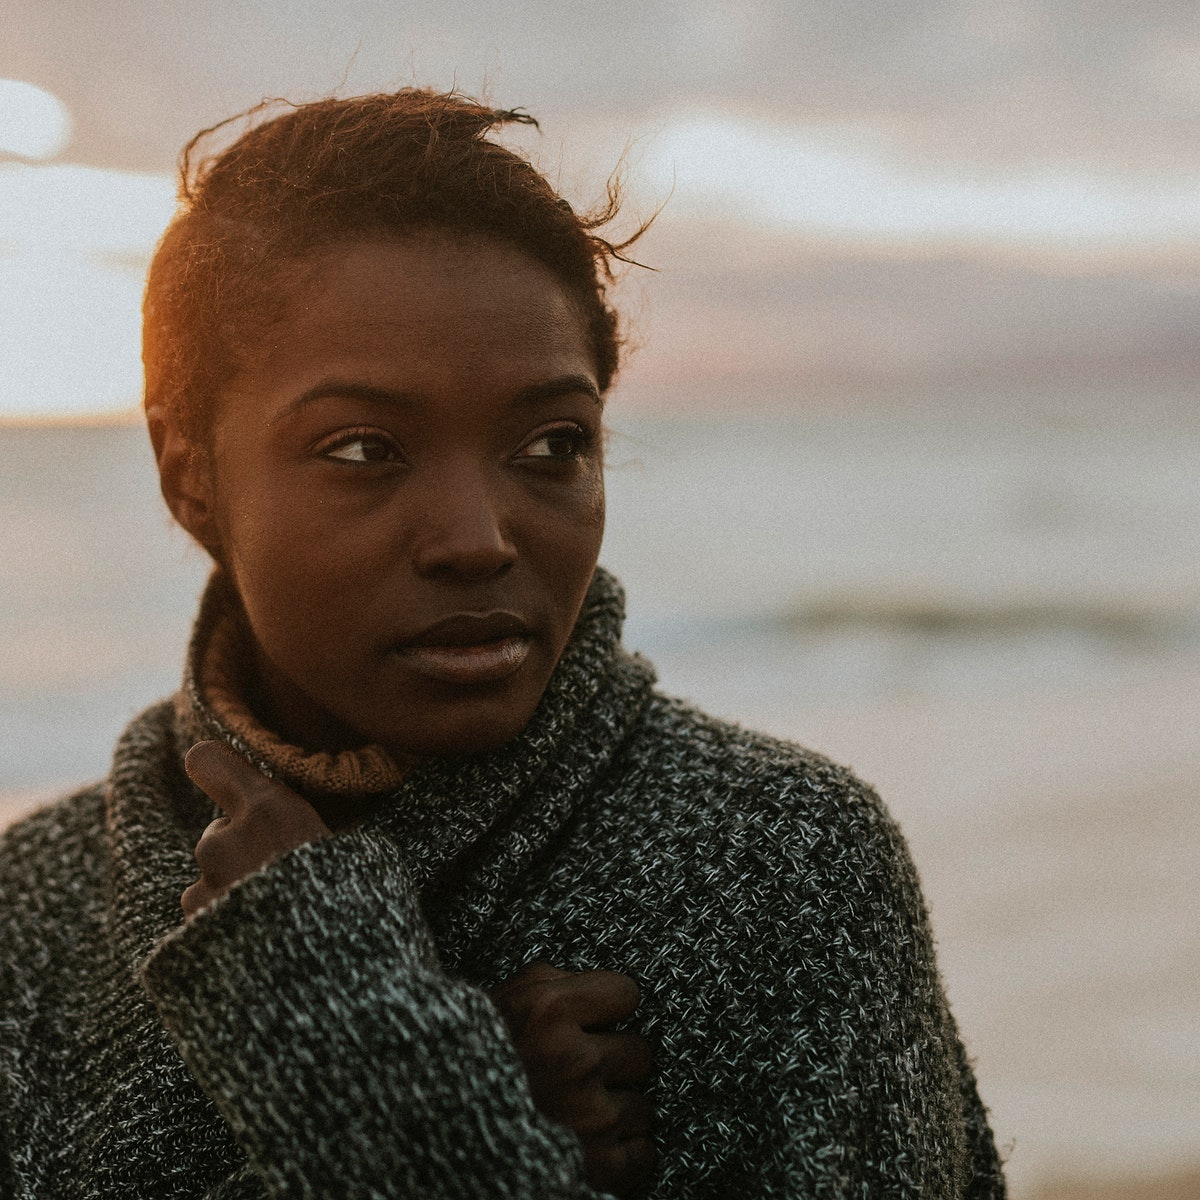 Black woman at the beach during sunset